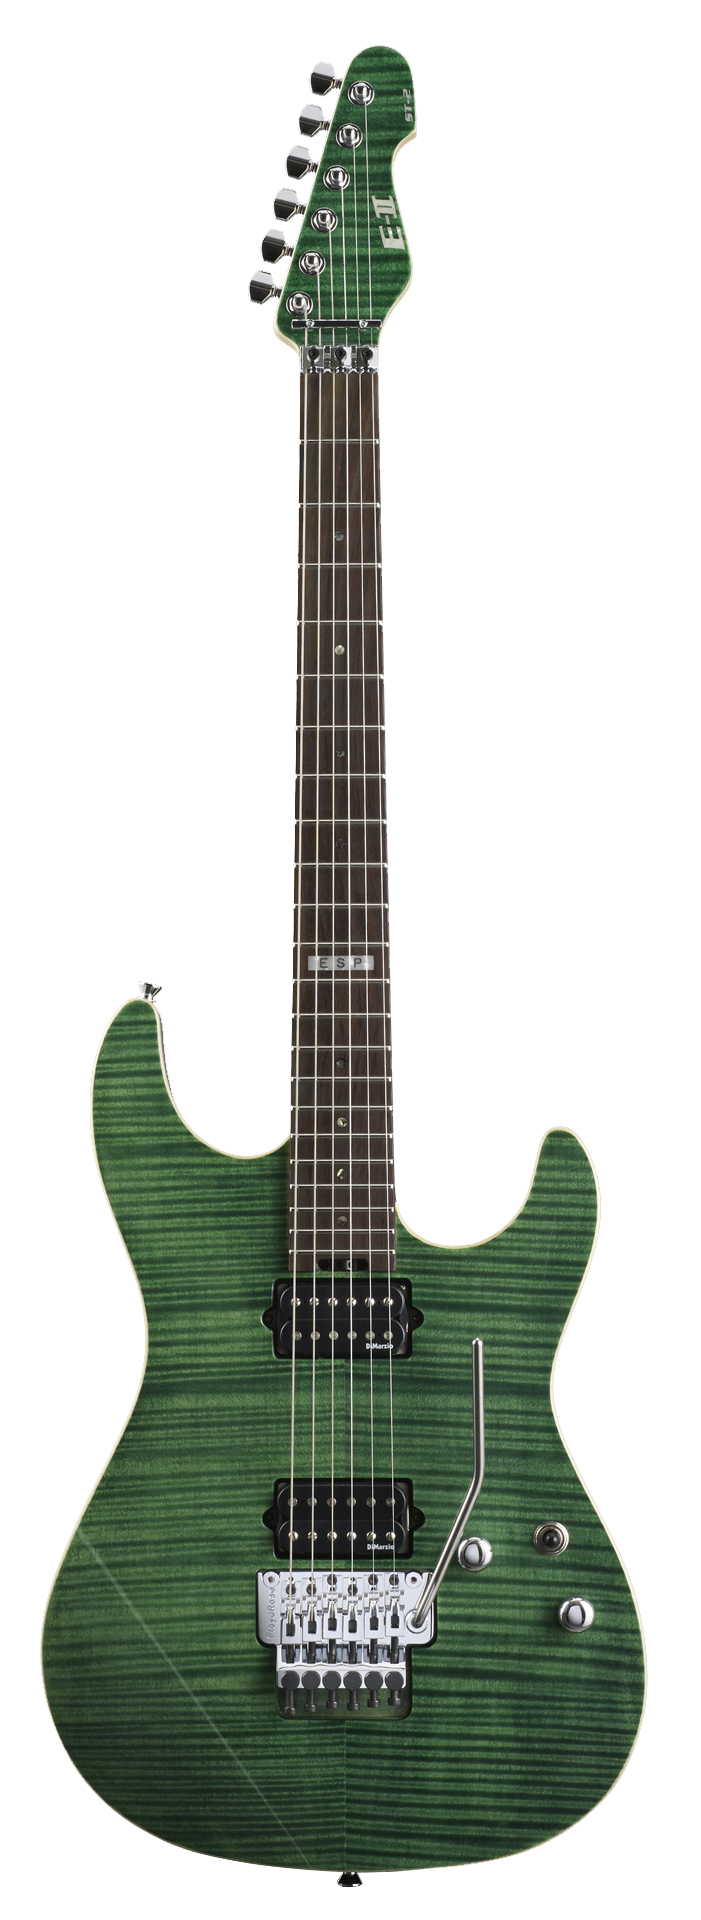 ESP ST-2 ROSEWOOD EGR E-II ST Series Electric Guitar with Fingerboard Emerald Green Finish